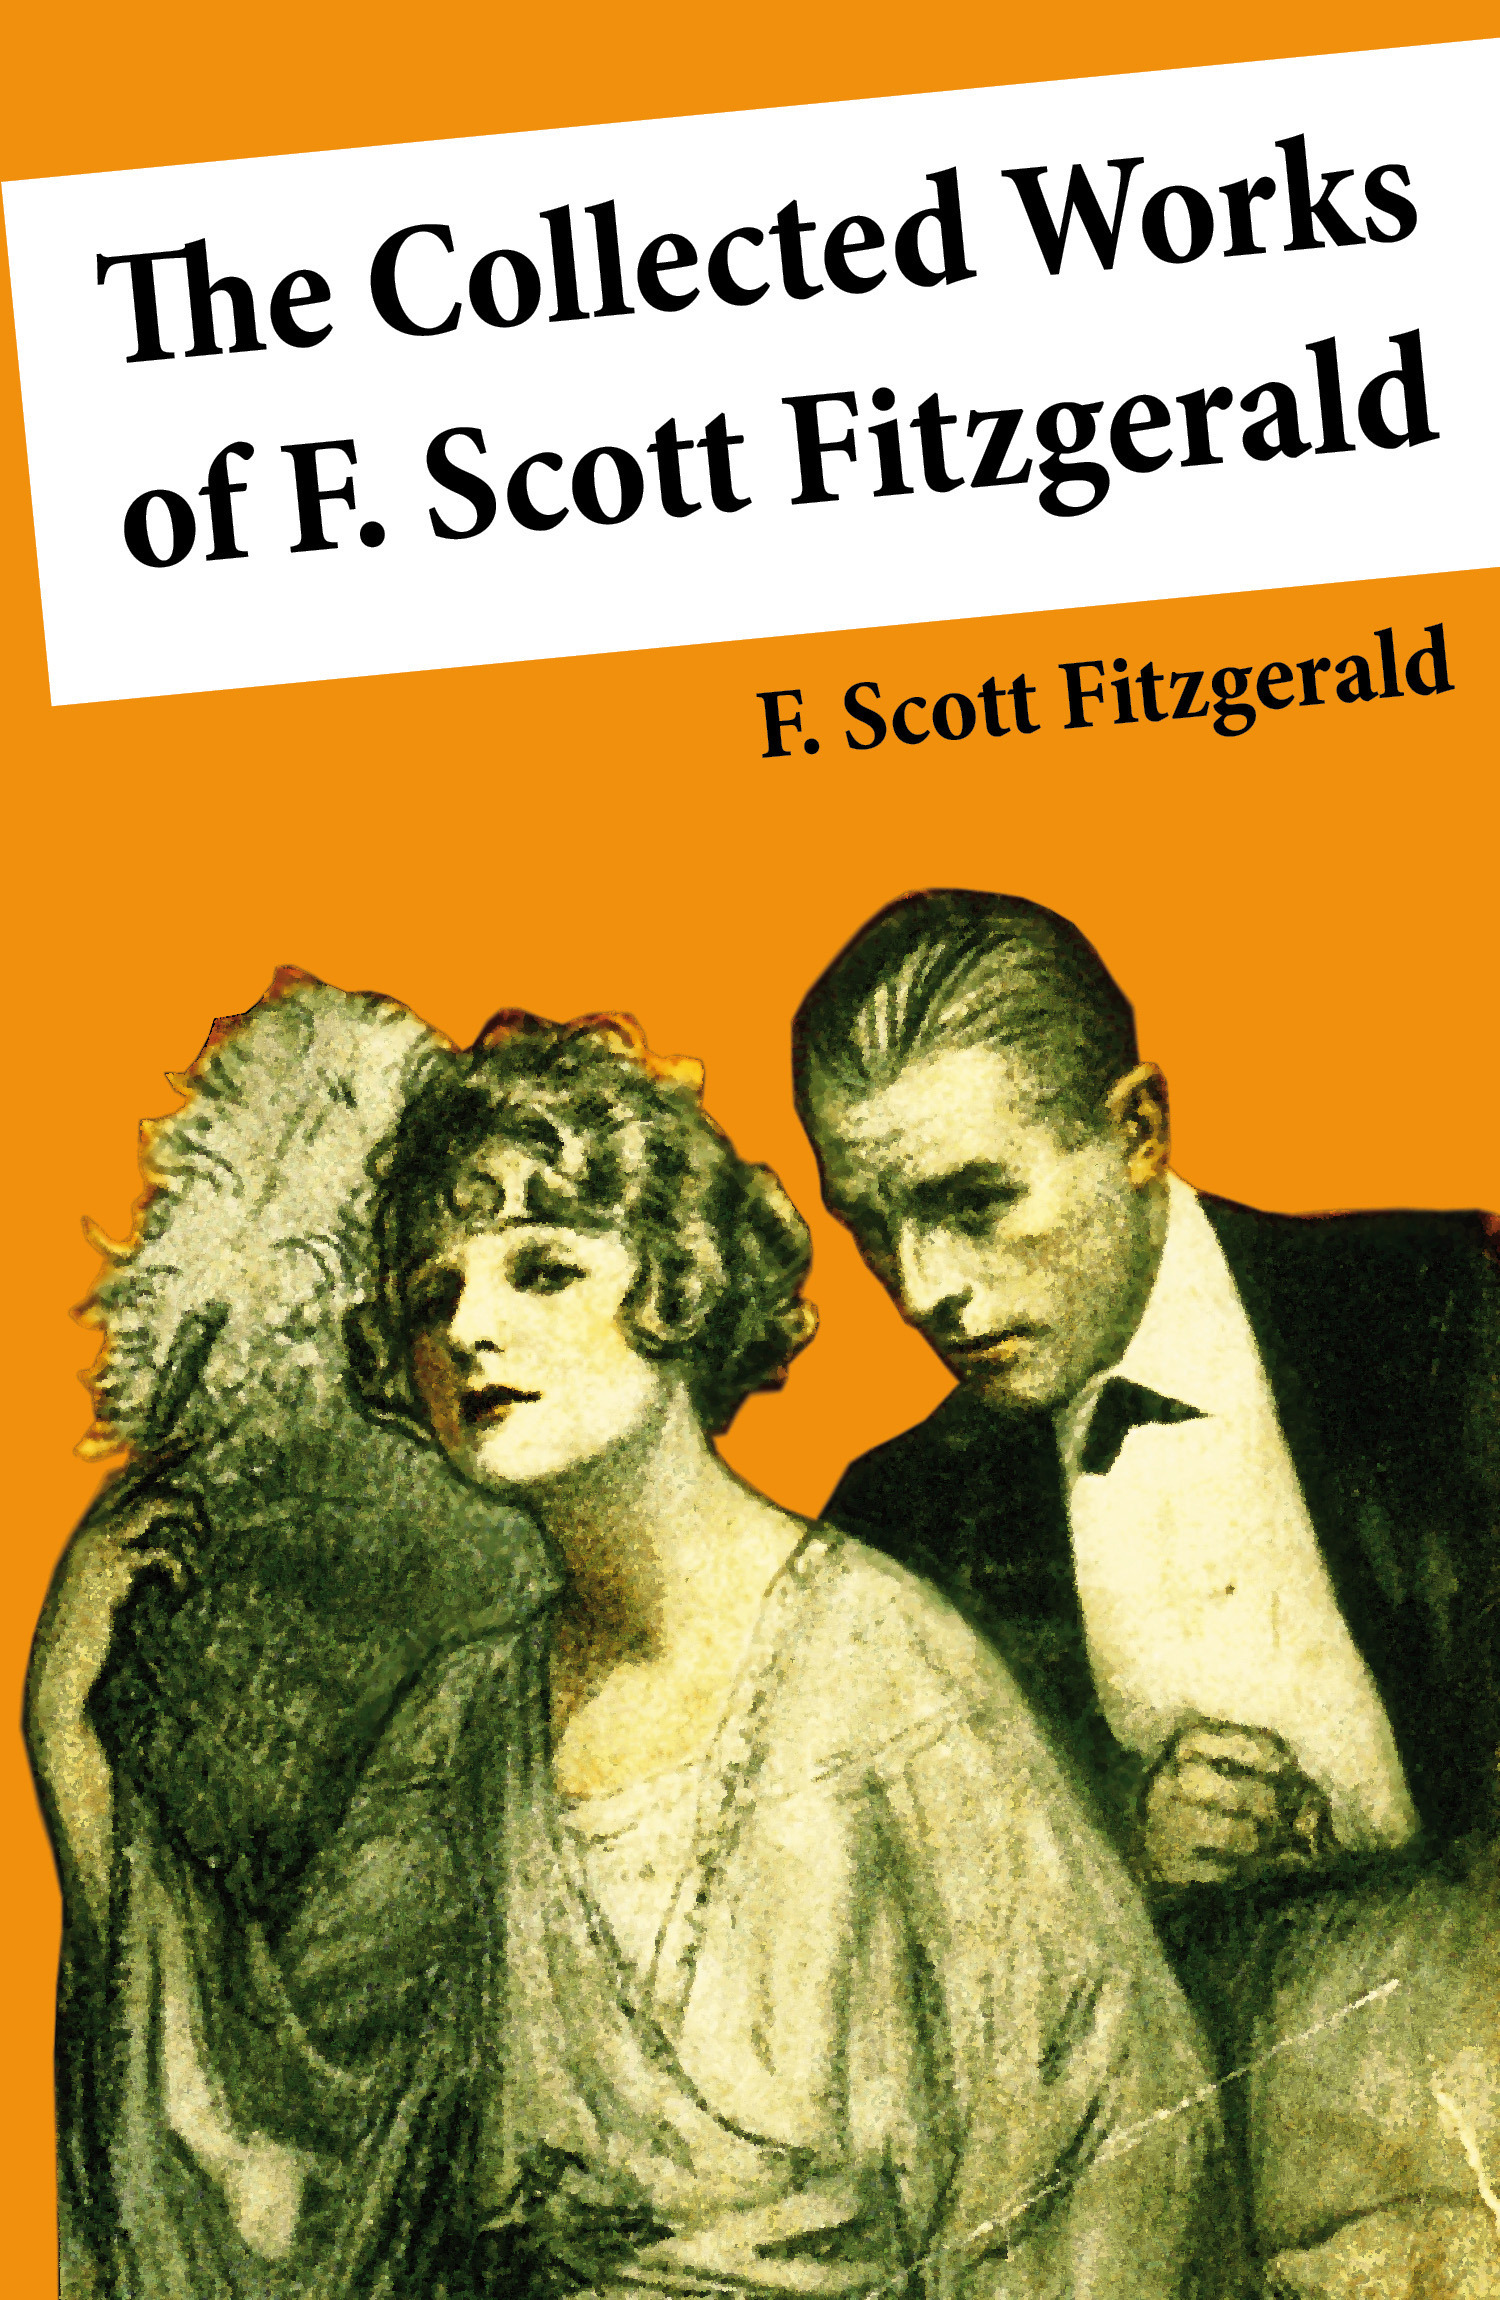 The collected works of F. Scott Fizgerald